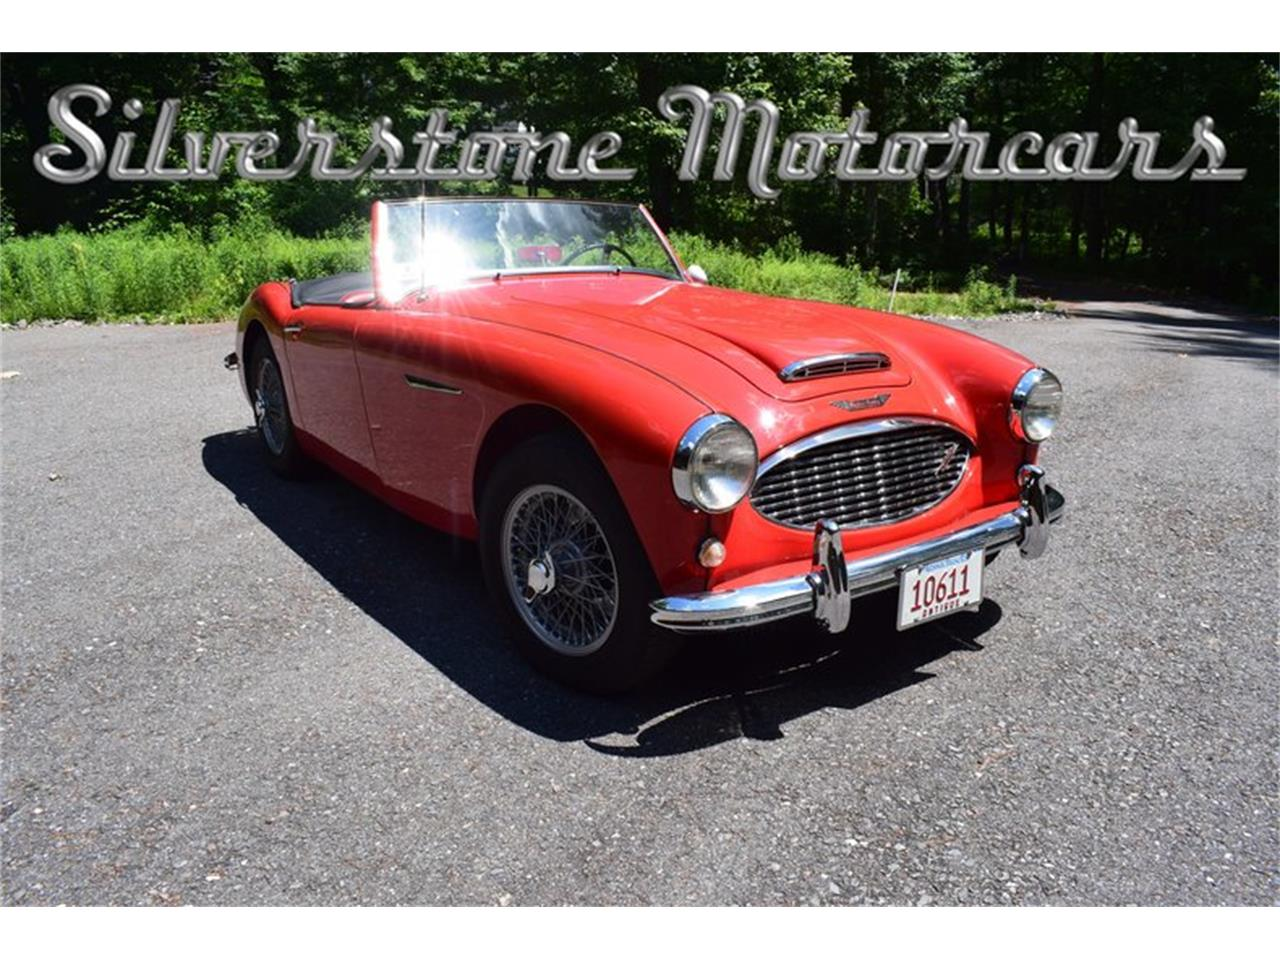 1961 Austin-Healey 3000 (CC-1105519) for sale in North Andover, Massachusetts